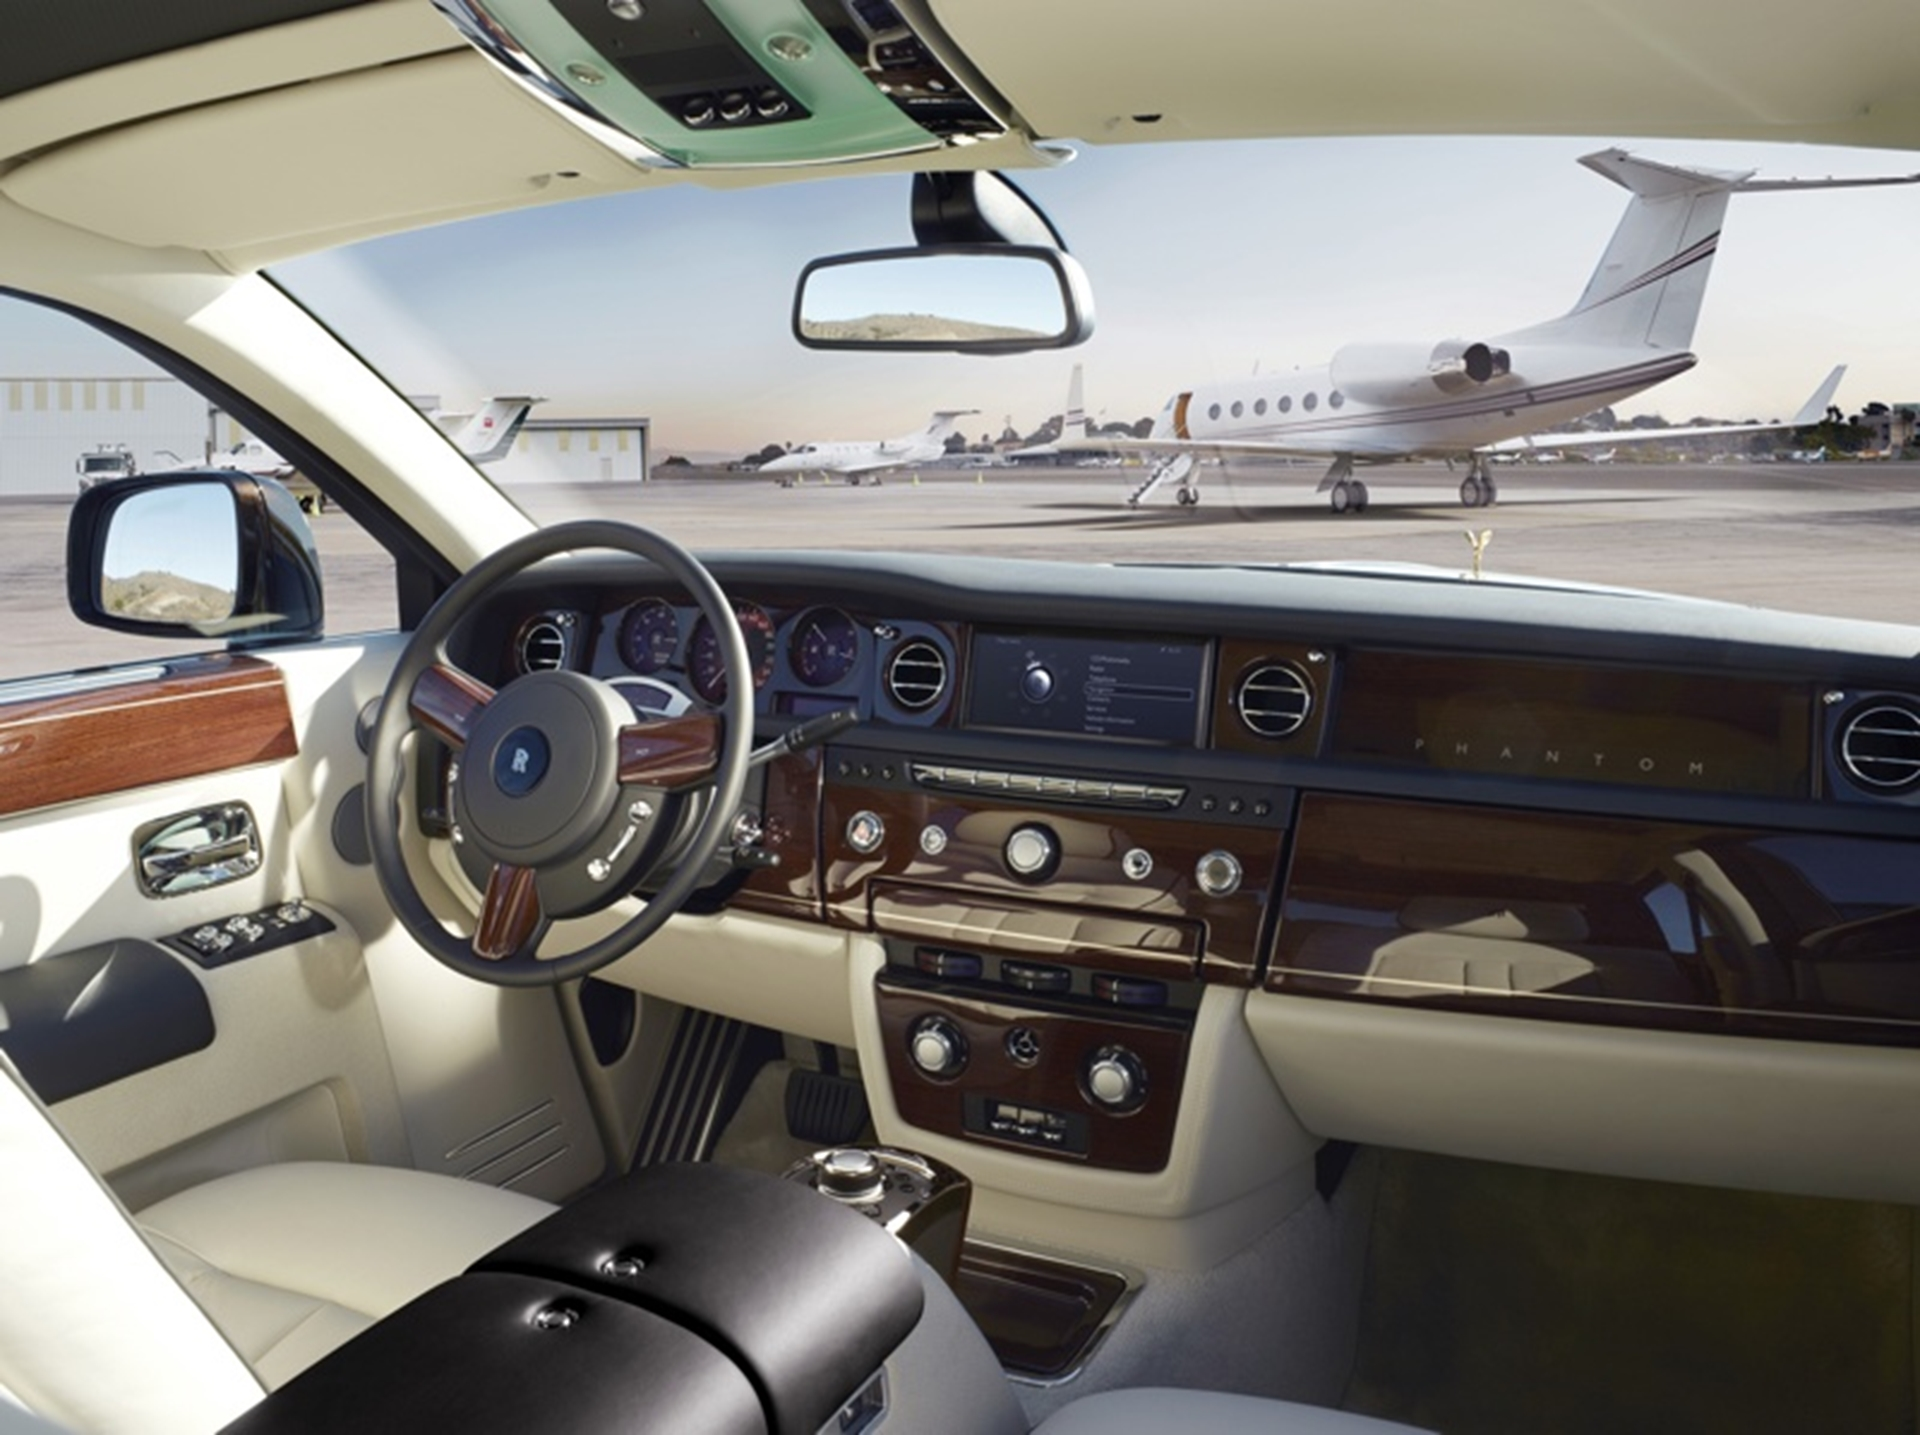 Rolls Royce Phantom Interior 2012